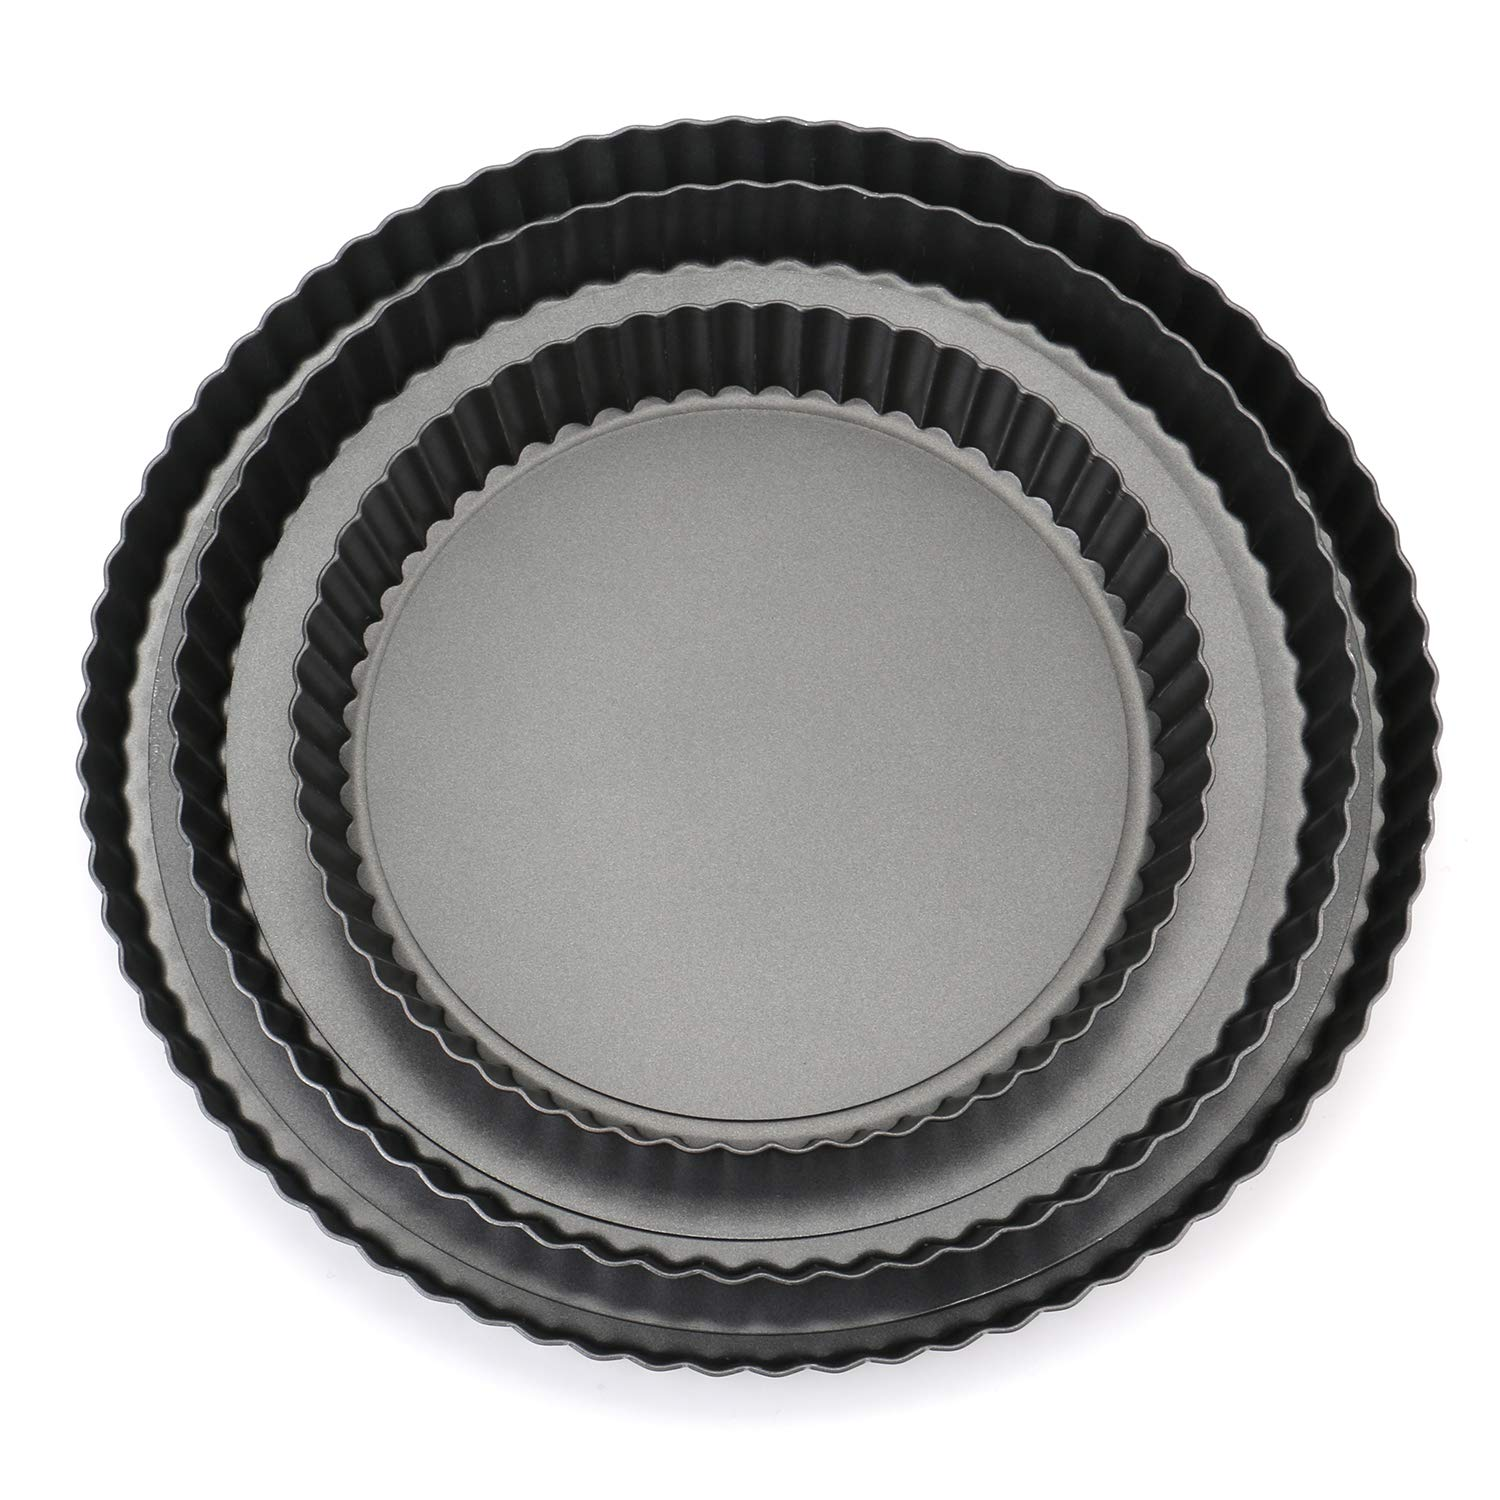 Tosnail Non-stick Quiche Pan Tart Pan Pie Pan with Removable Loose Bottom - Set of 3 by Tosnail